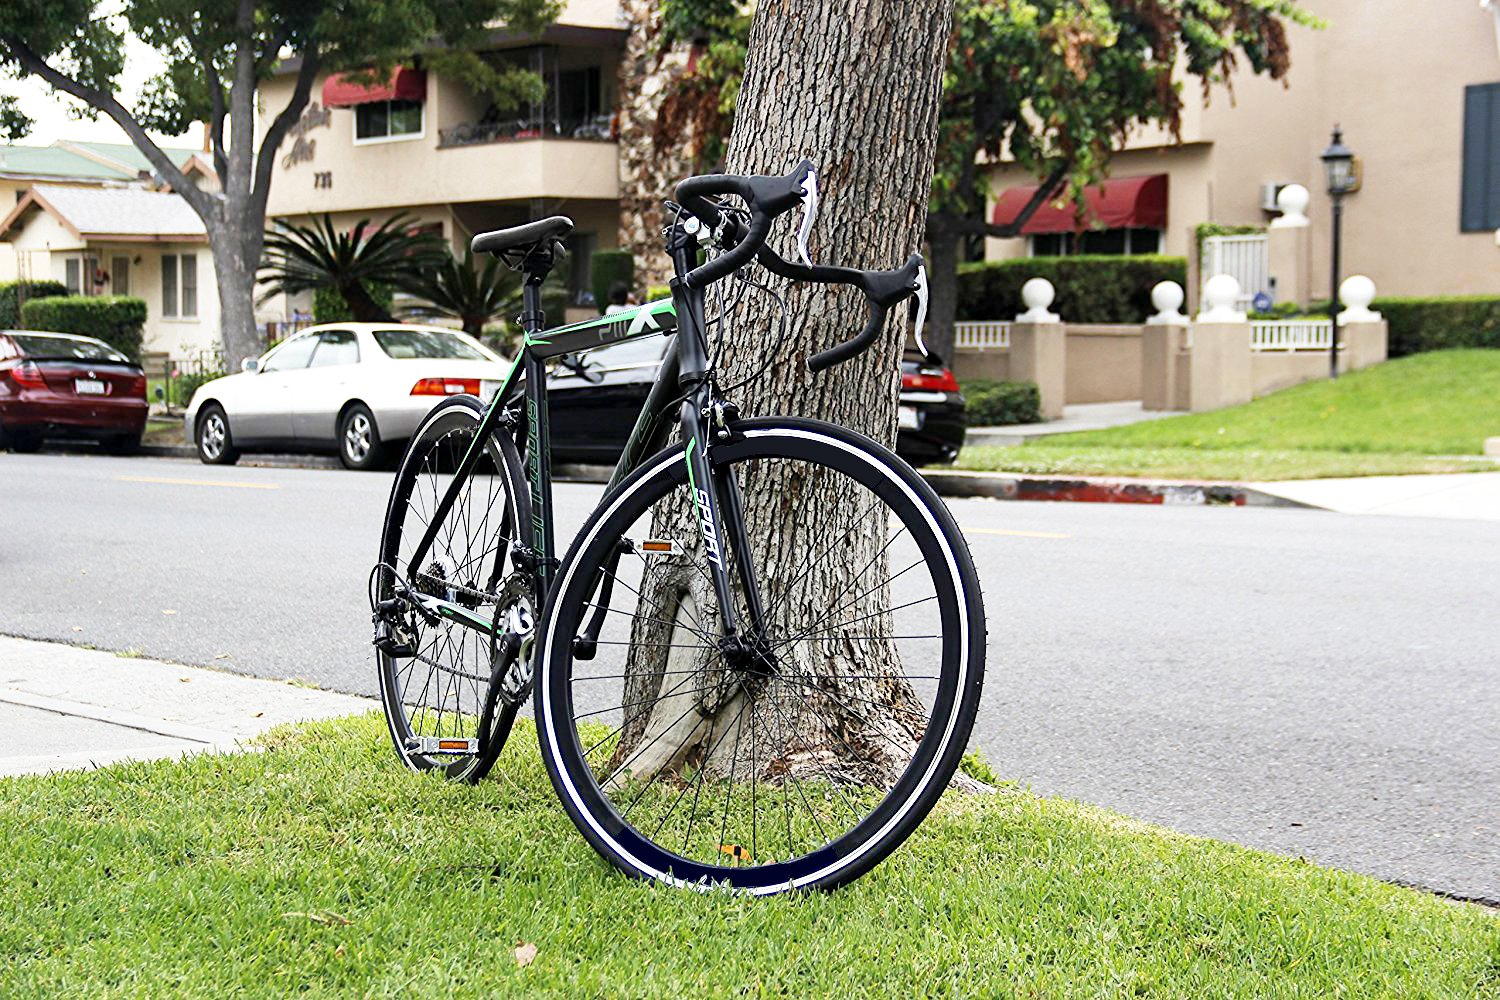 Road Bike Aluminum Commuter Bike Shimano 21 Speed 700c x 25c Racing Bicyle Sport Life Black 58cm by Gr8 Sport + Life (Image #5)